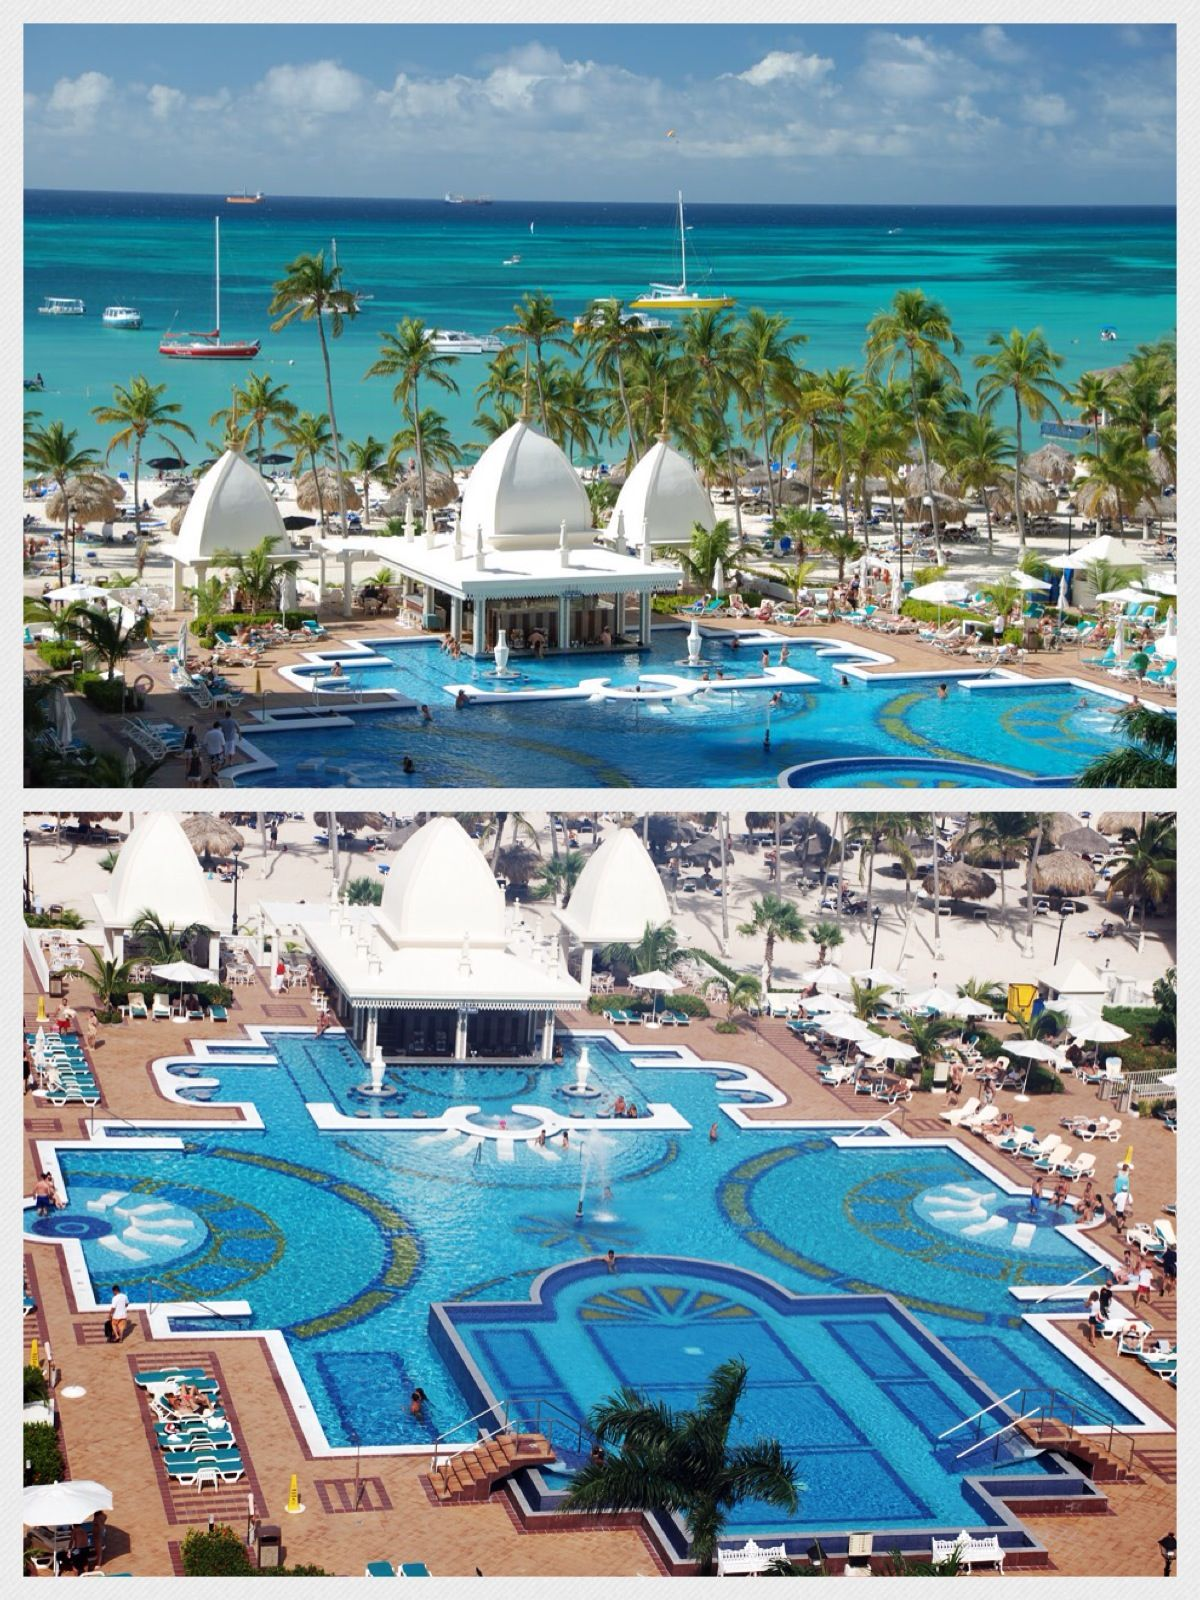 Aruba  Riu Palace allinclusive resort located on Palm